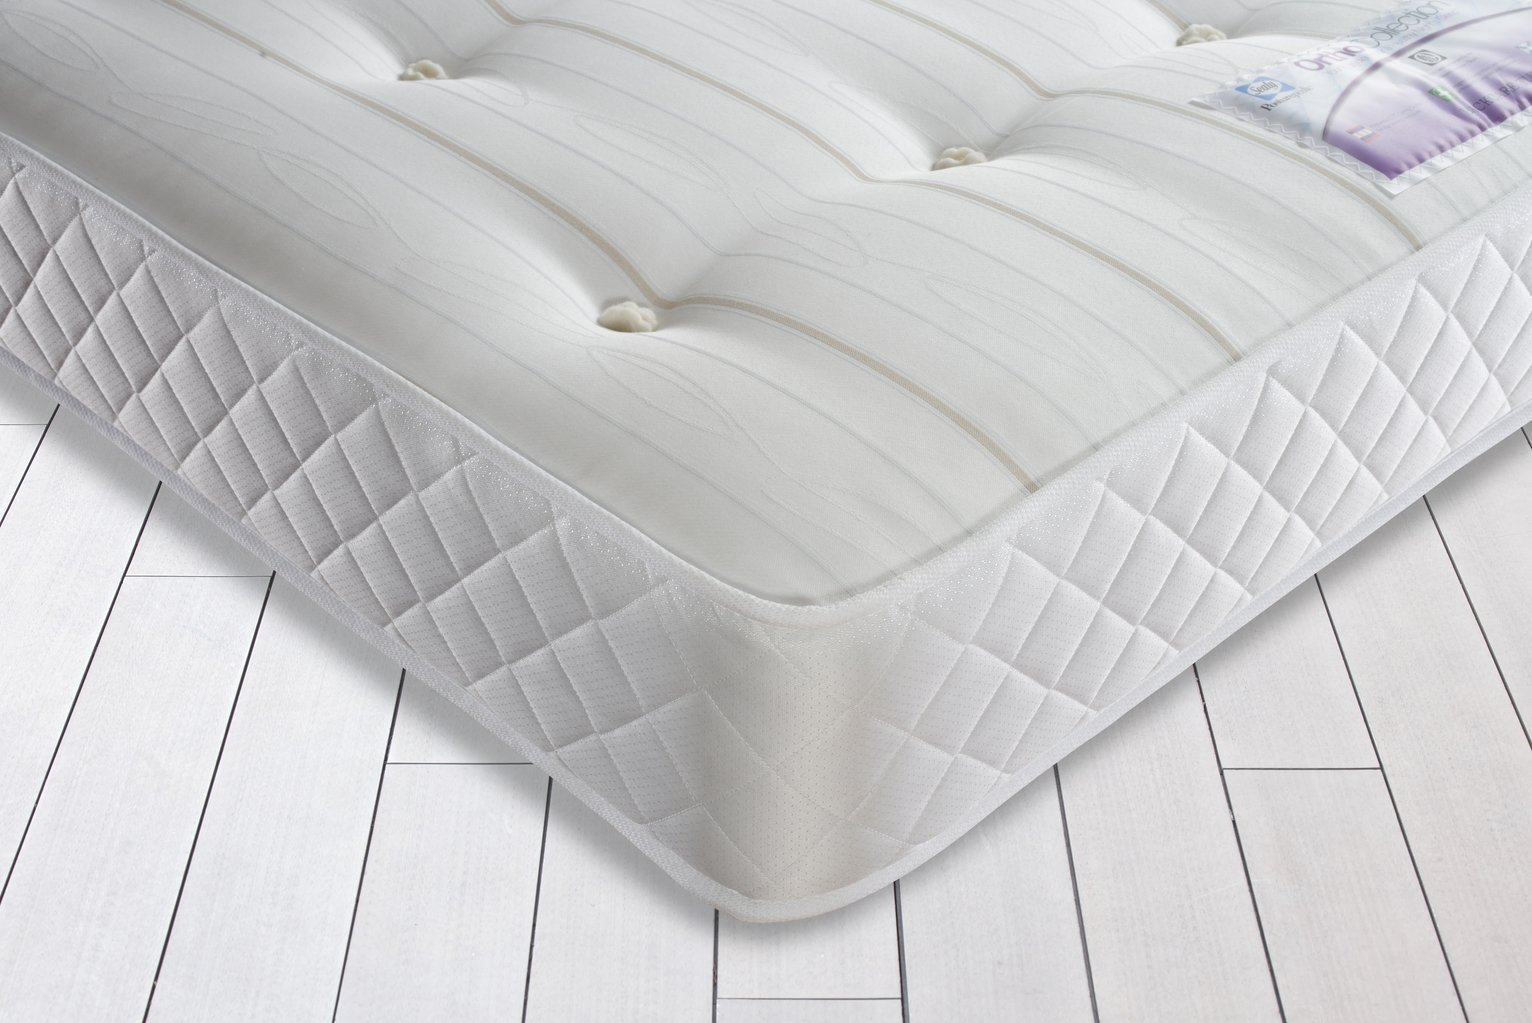 Sealy Posturepedic Sprung Firm Ortho Single Mattress